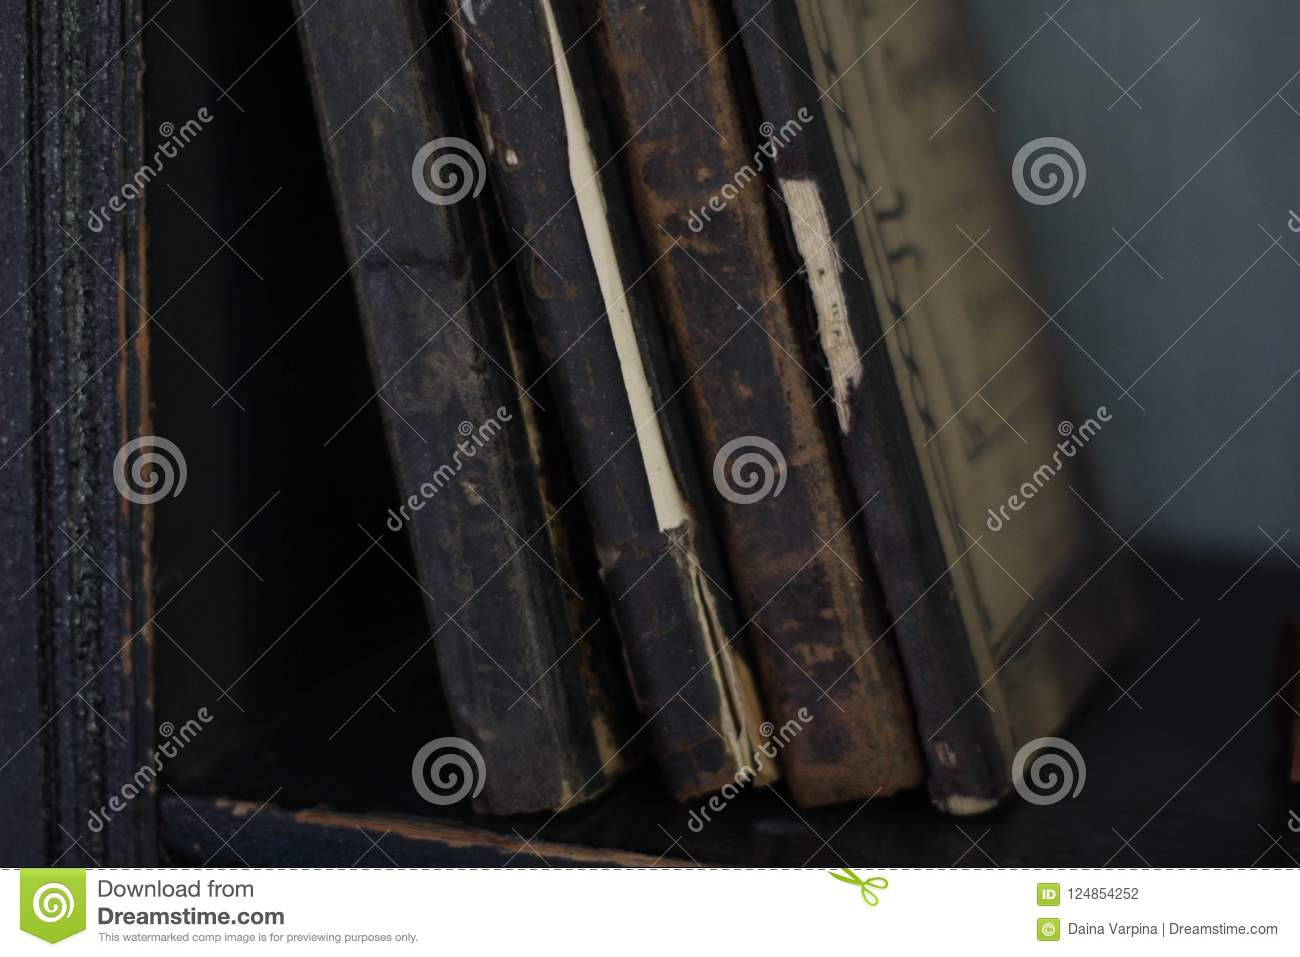 Download Old Books On Bookshelf With Vintage Bindings And Beautiful Gilded Leather Book